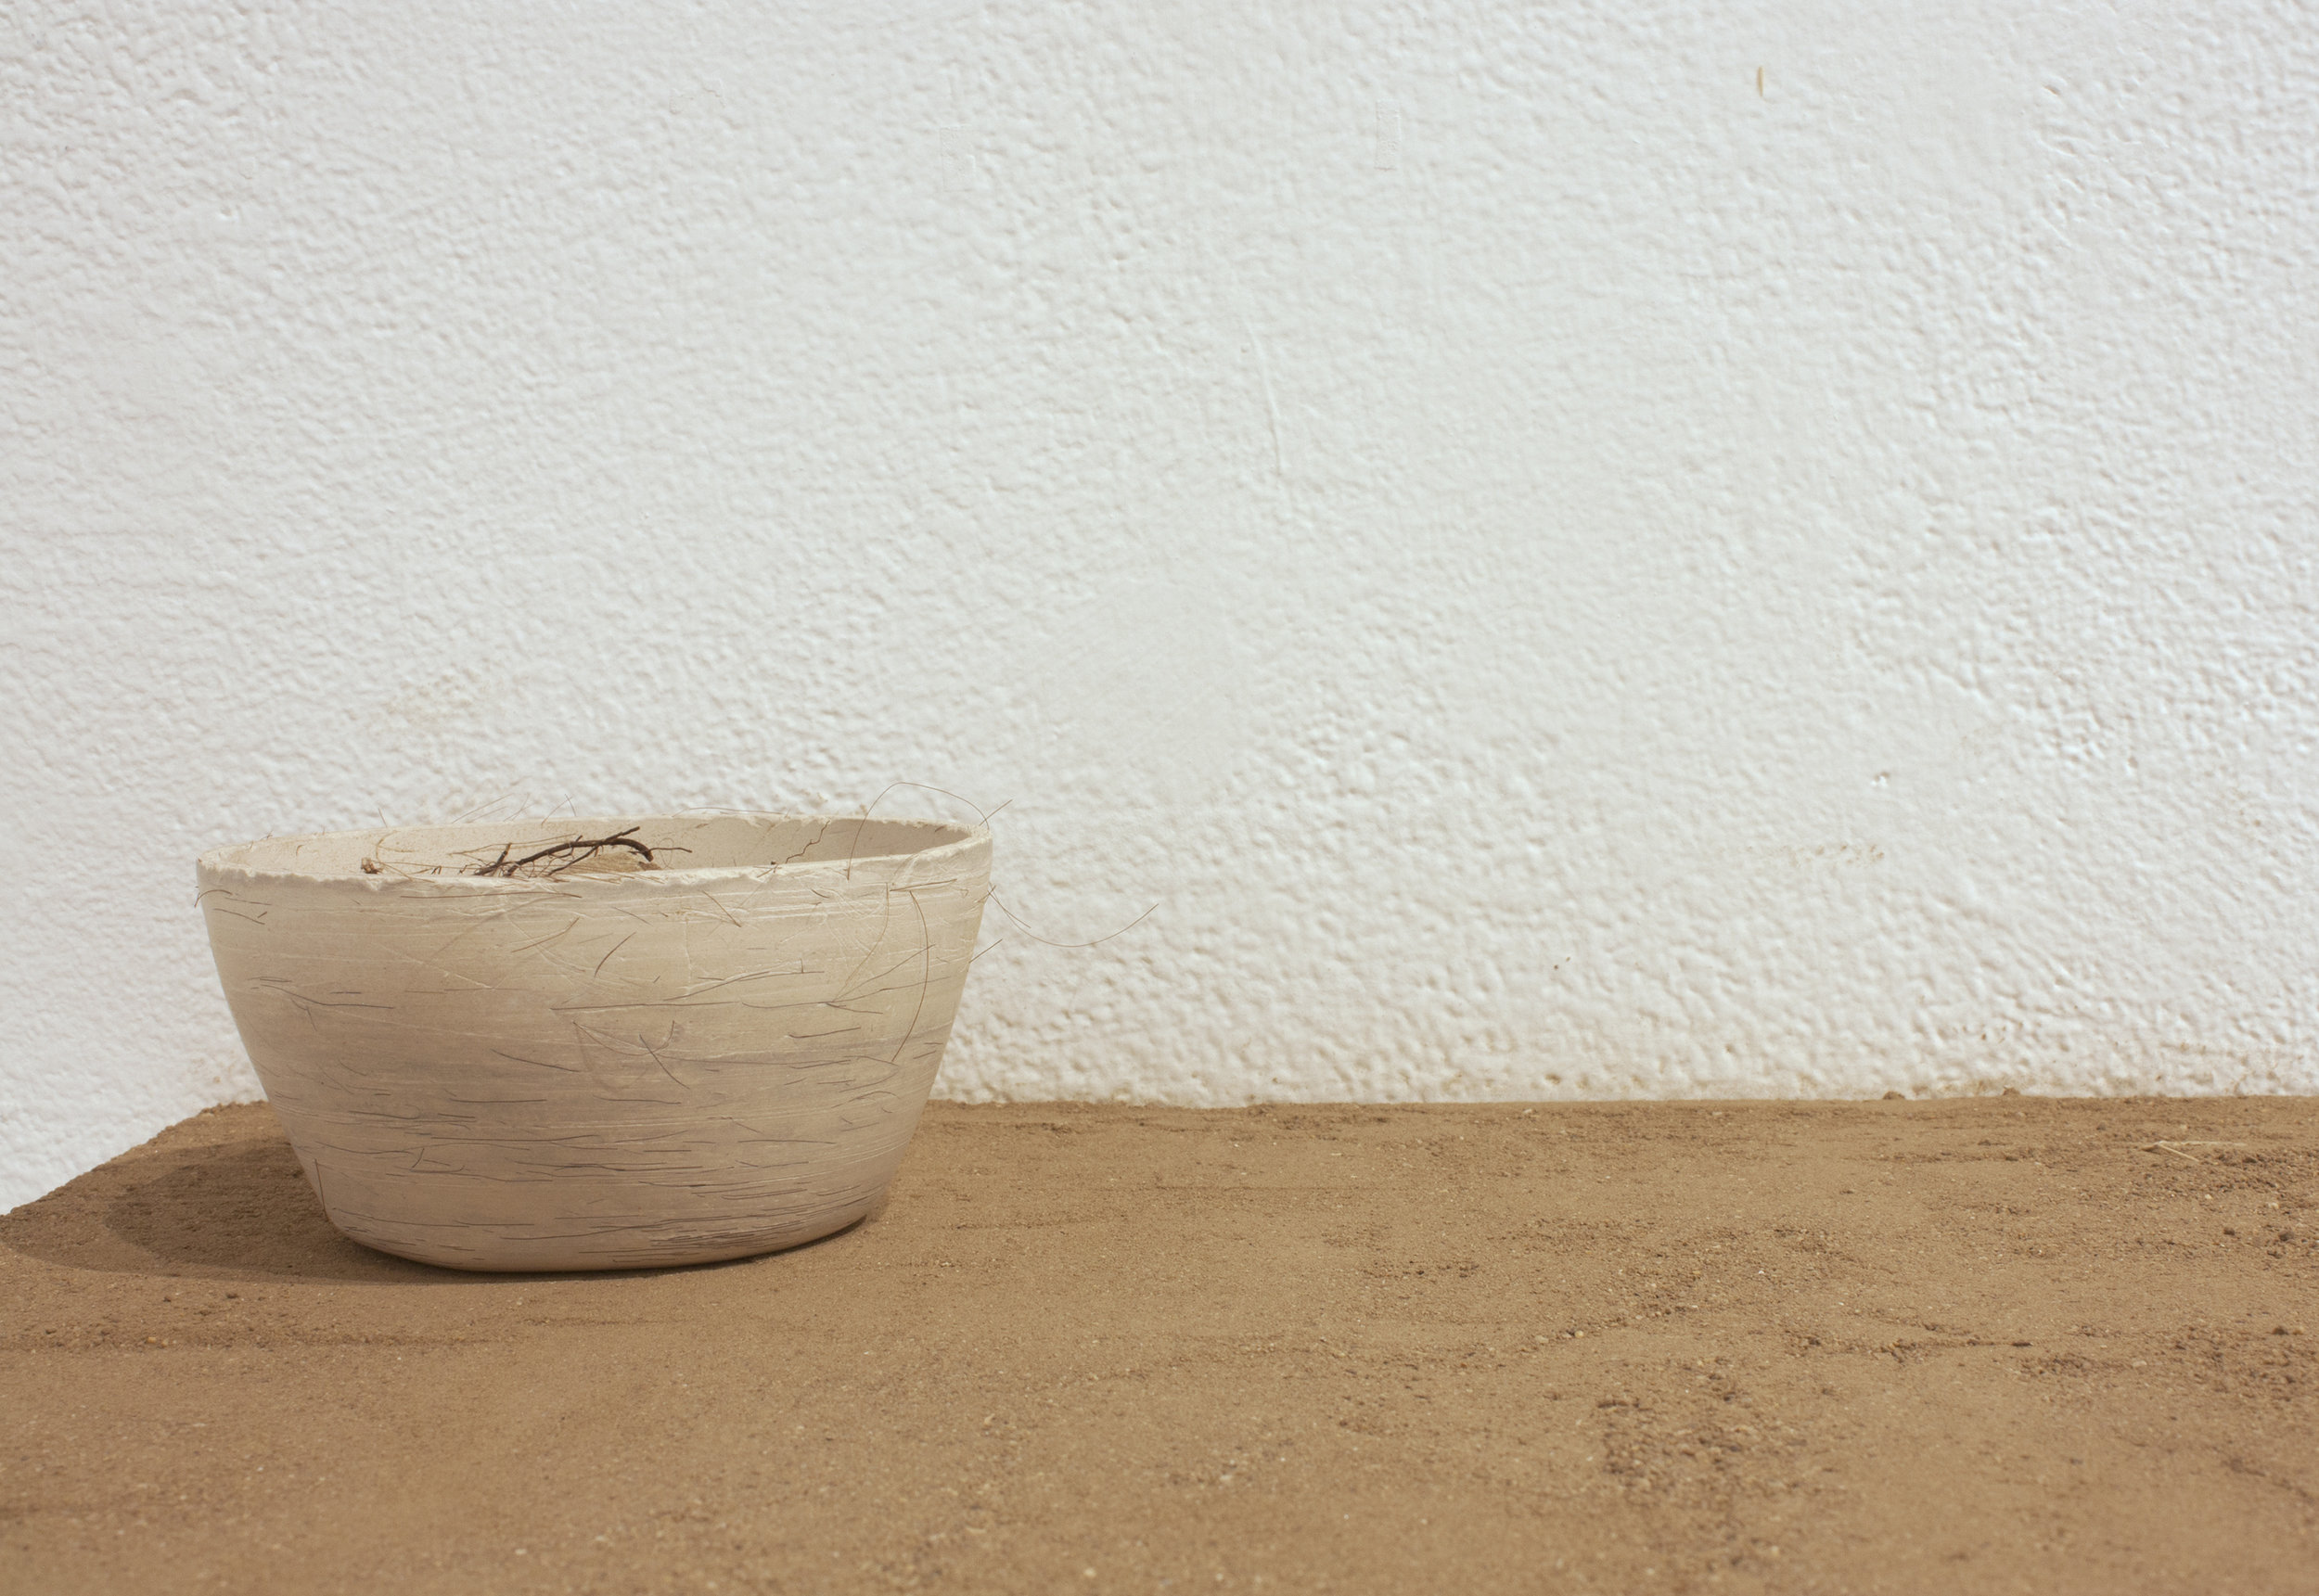 a cyclical desire for    Sifted Dirt, Porcelain with Hair, and Dried Roots   4' x 2' x 2'  2016